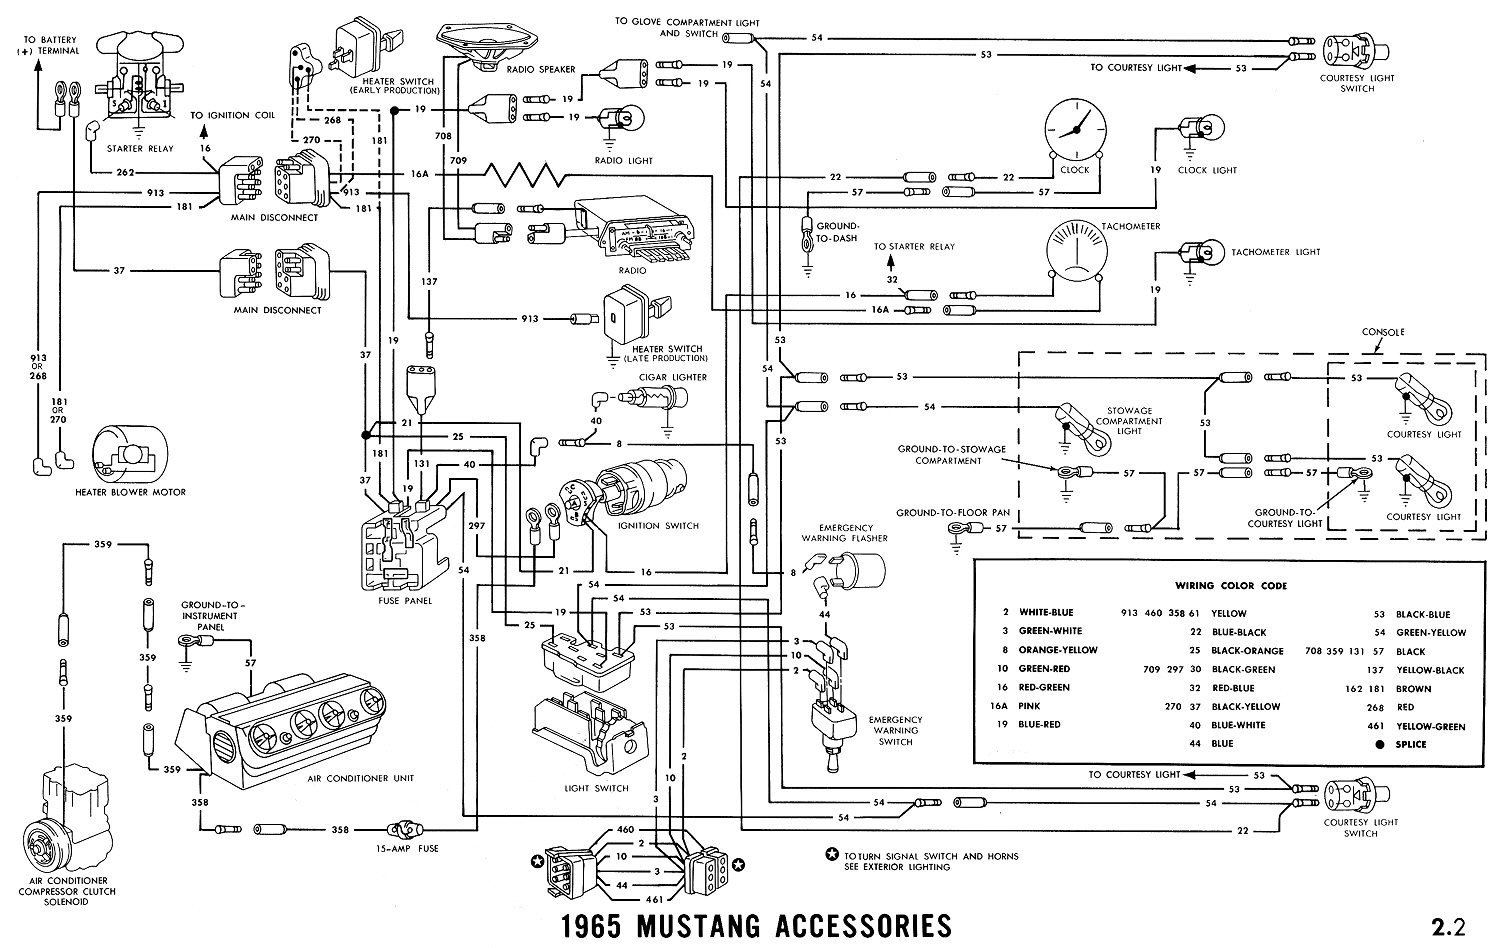 1965 mustang color wiring diagram easy wiring diagrams u2022 rh art isere com